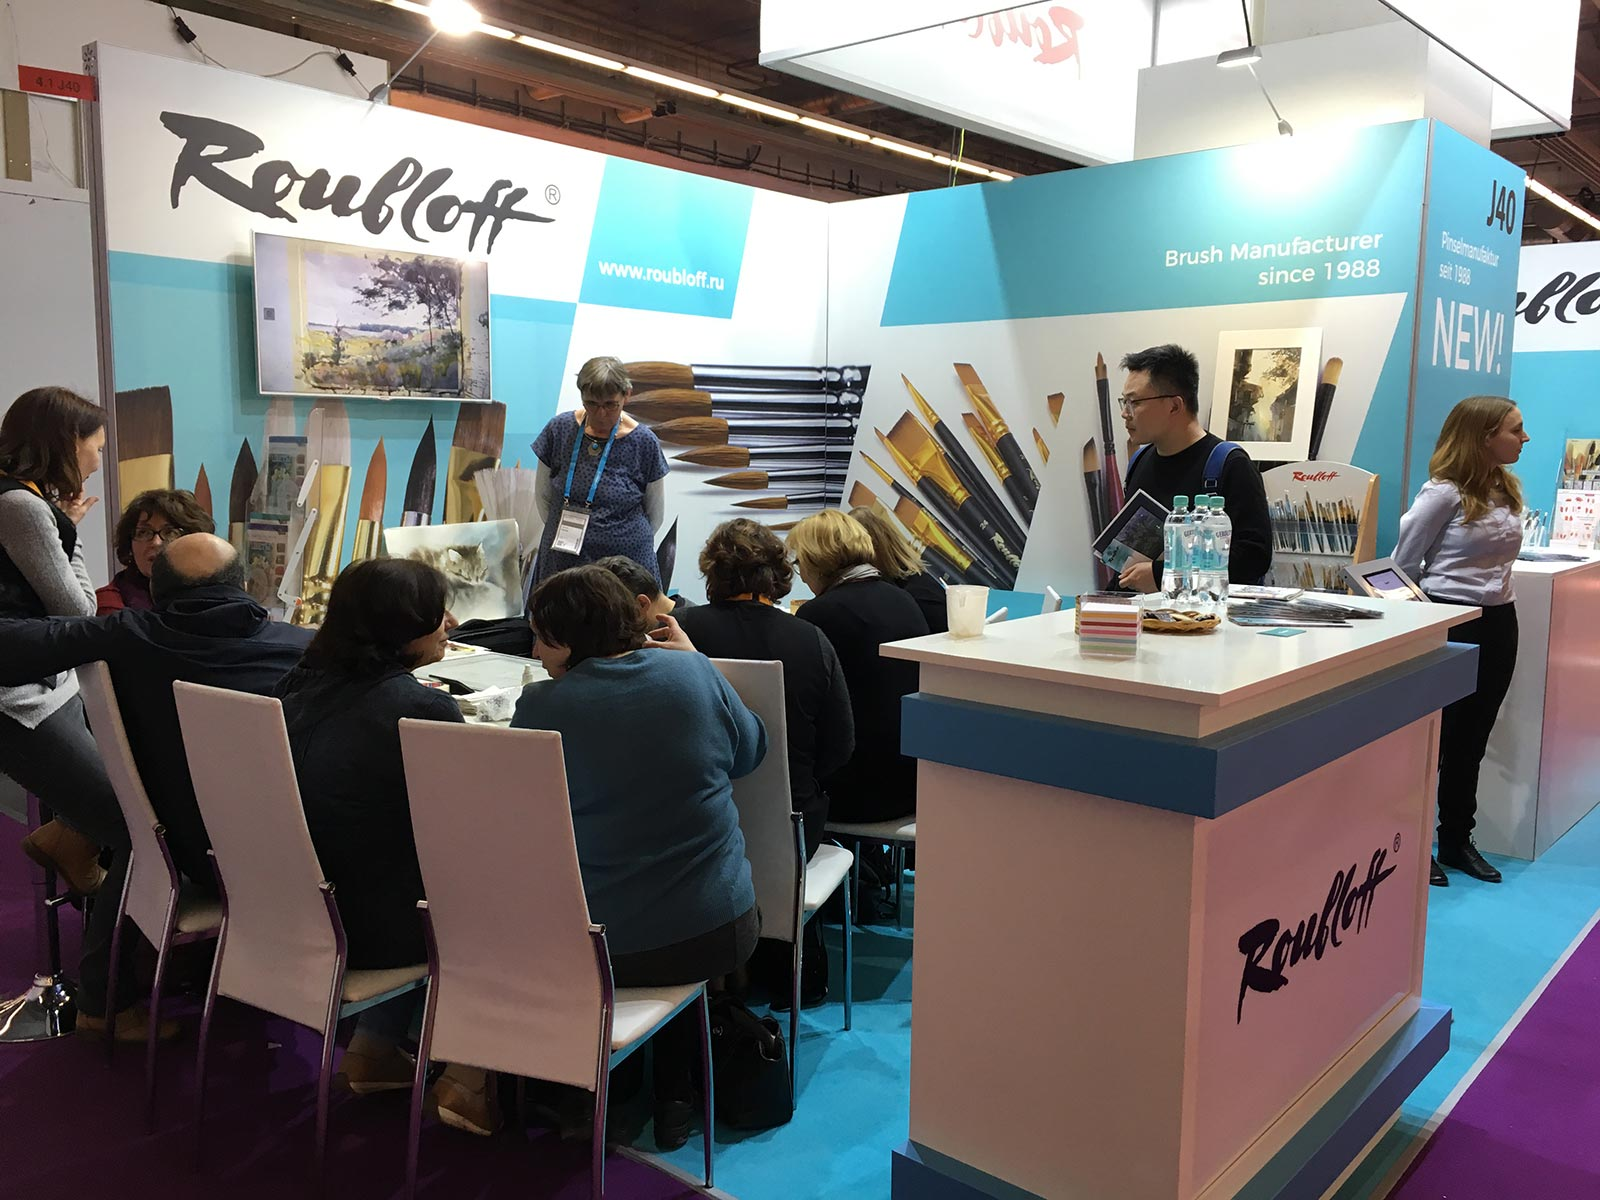 Creativeworld messe frankfurt 2018 for Messe frankfurt januar 2017